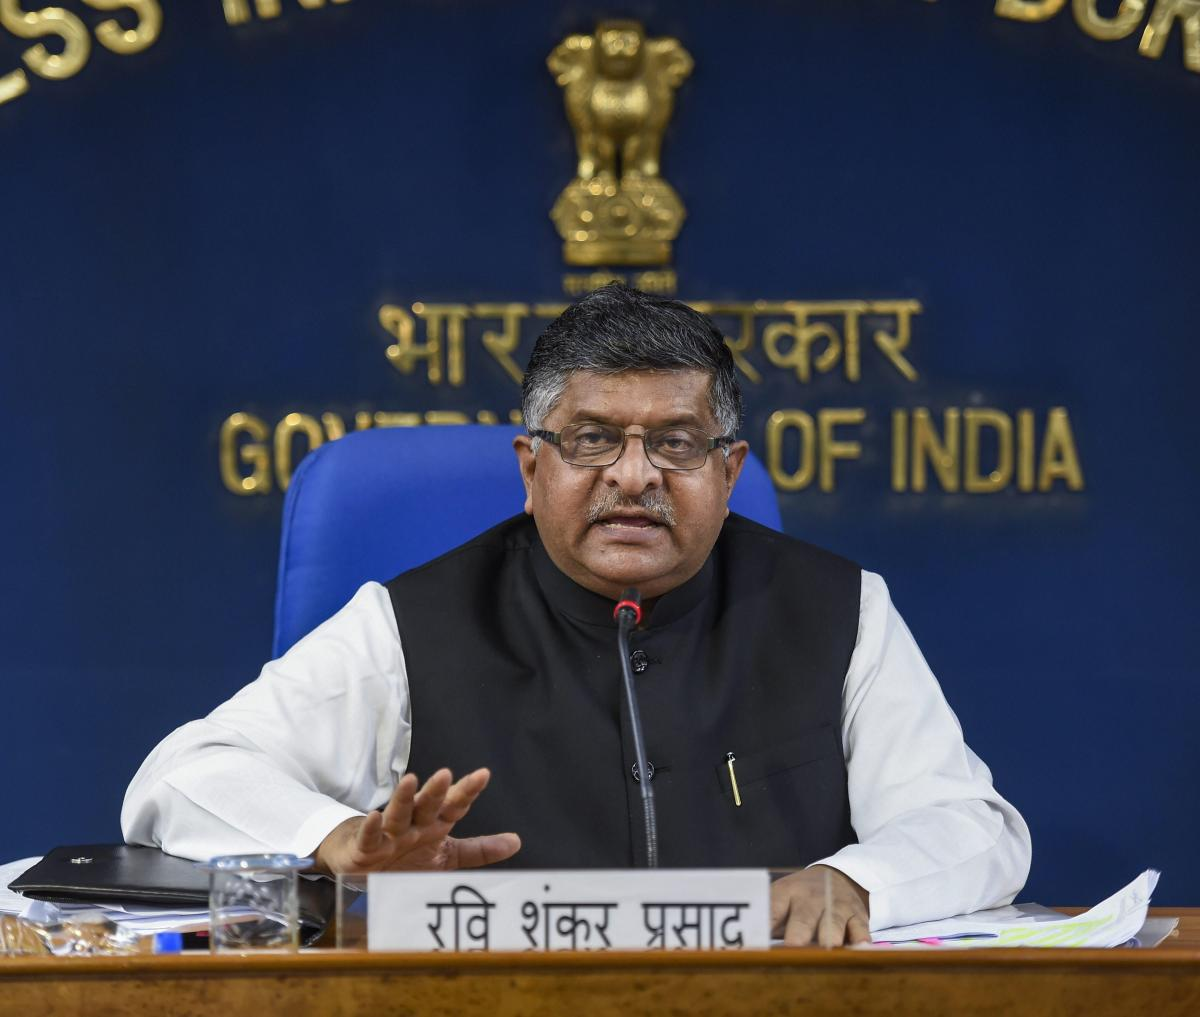 """IT Minister Ravi Shankar Prasad, after meeting WhatsApp Head Chris Daniels, said the Facebook-owned messaging app has contributed significantly to India's digital story but it needs to find solutions to deal with """"sinister developments"""" like mob lynching"""